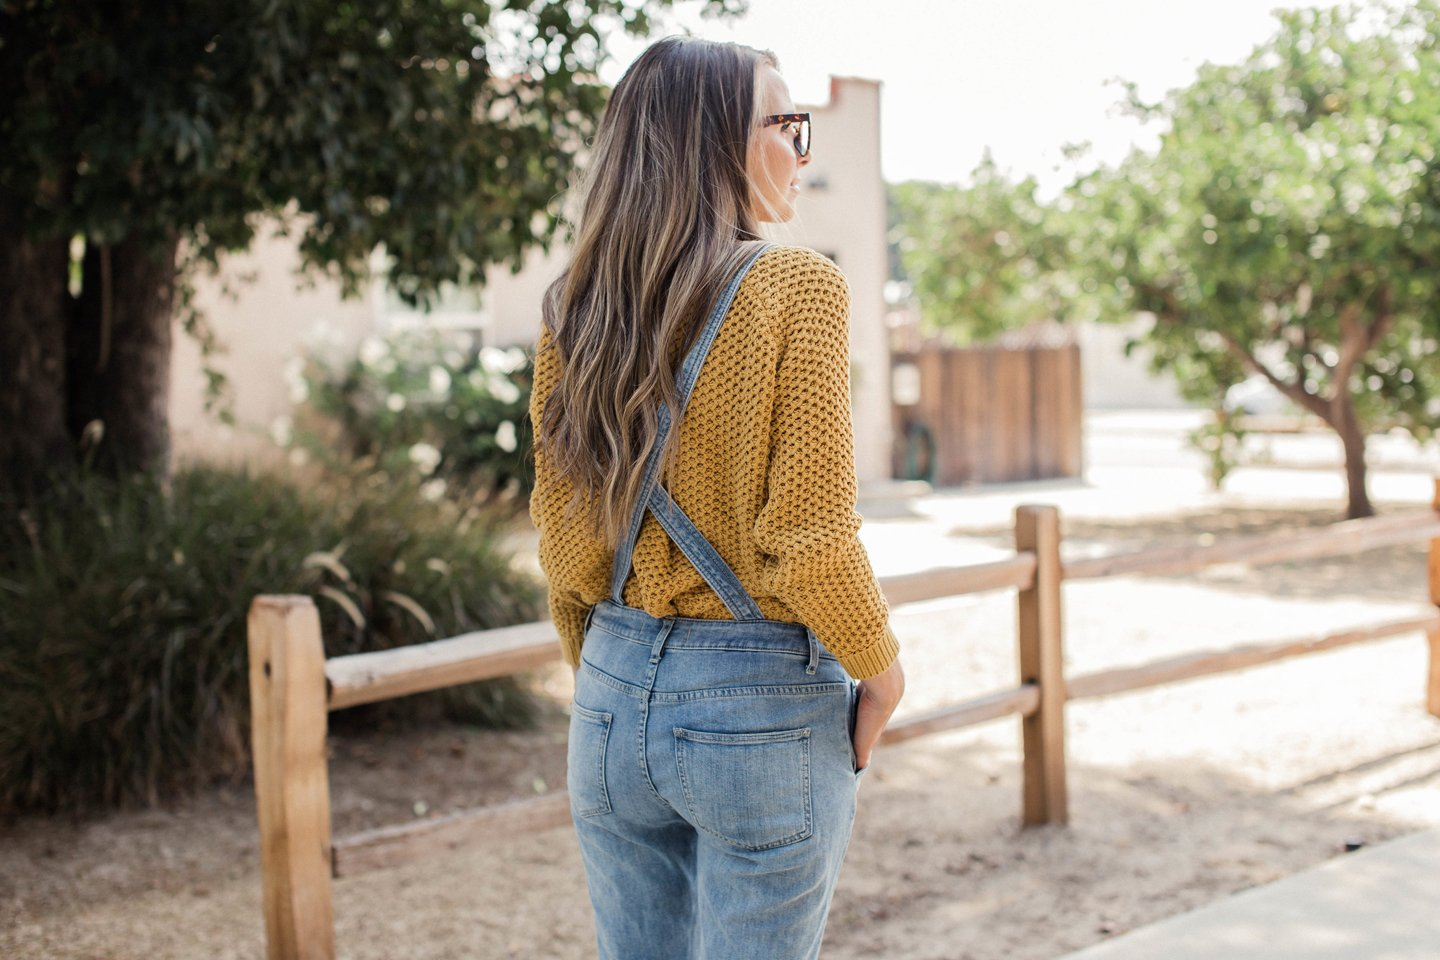 Free people overalls with forever 21 mustard yellow cable knit sweater